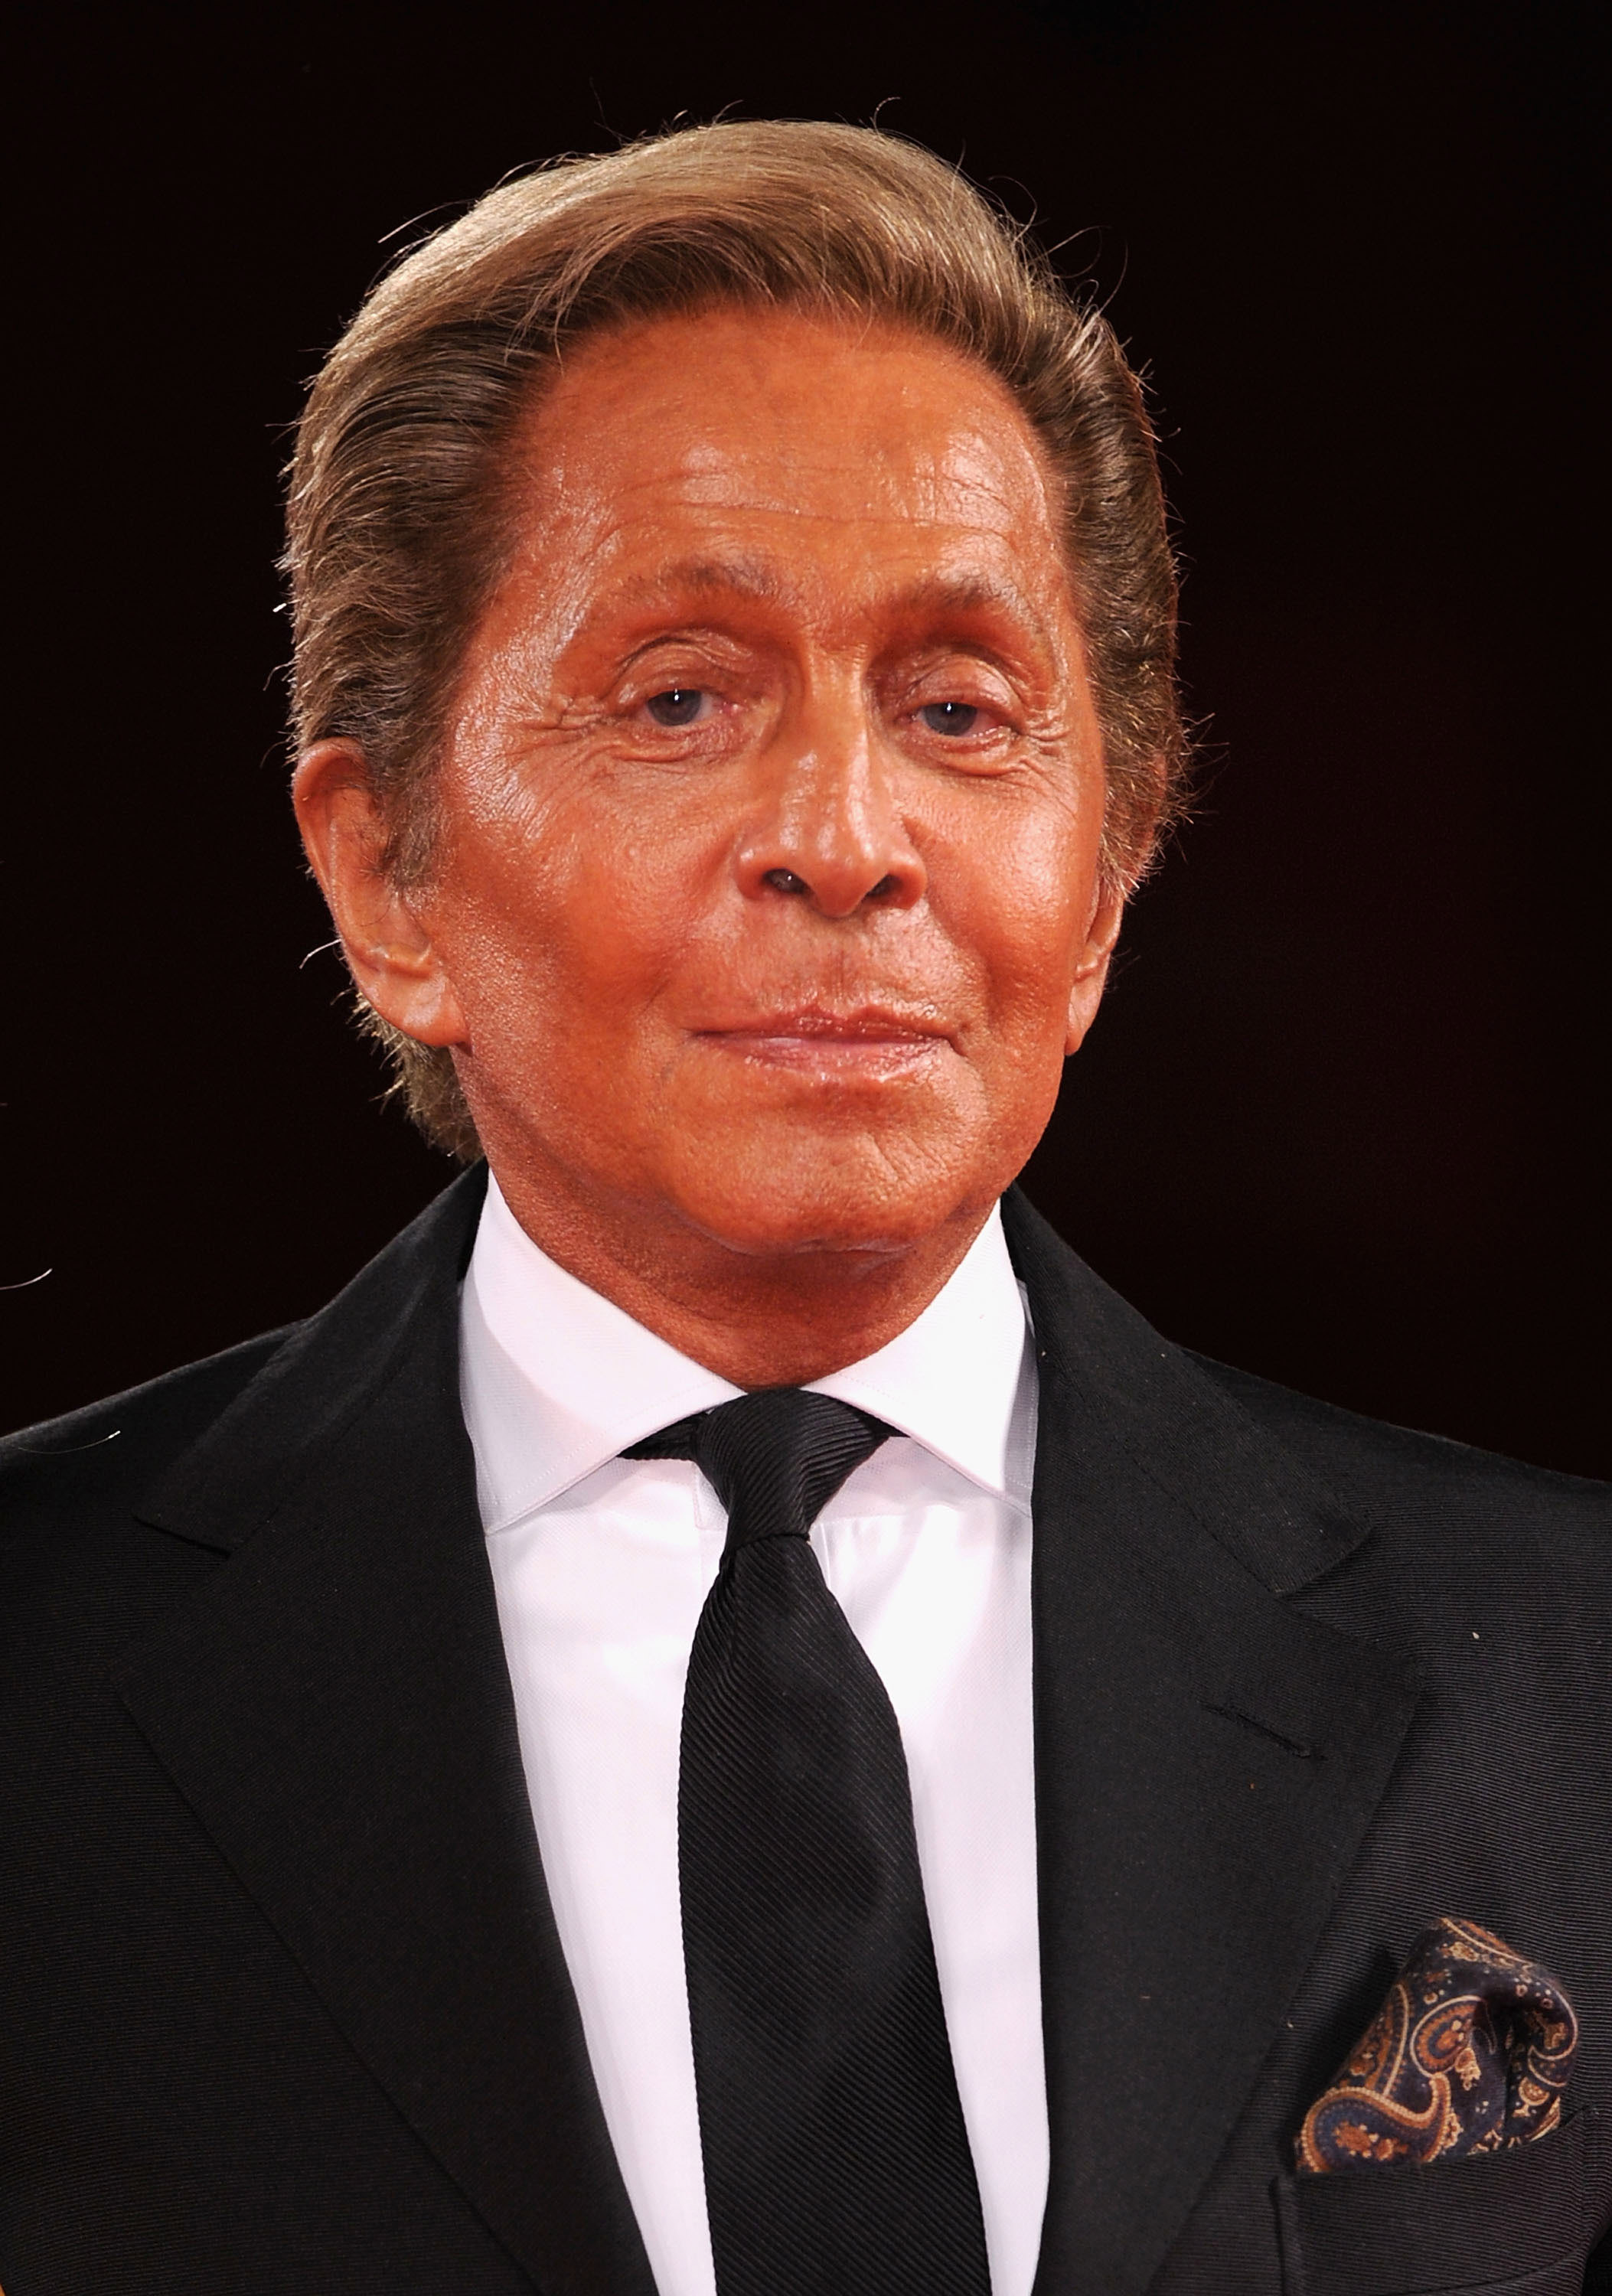 Valentino turned up for Madonna's big night.